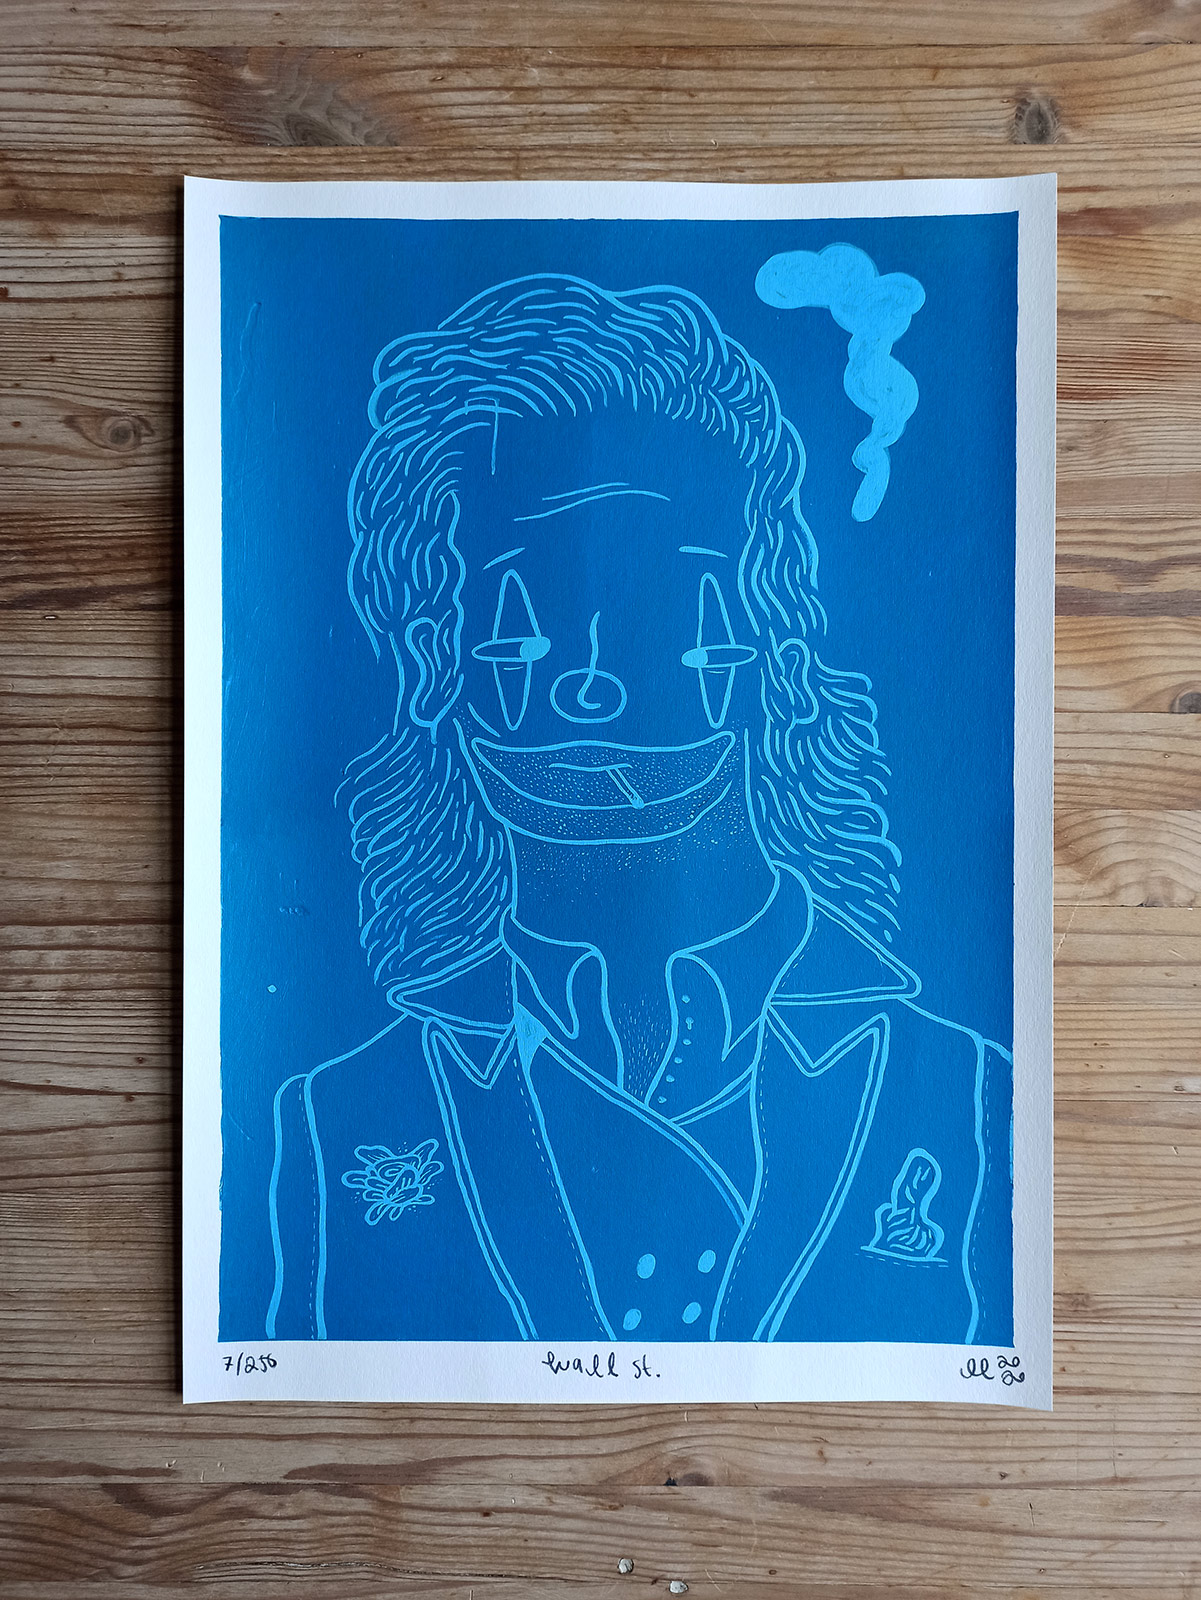 posters-prints, giclee-print, figurative, graphical, illustrative, pop, portraiture, bodies, cartoons, humor, people, blue, turquoise, ink, paper, amusing, cigarettes, contemporary-art, danish, decorative, design, interior, interior-design, modern, modern-art, nordic, posters, prints, scandinavien, Buy original high quality art. Paintings, drawings, limited edition prints & posters by talented artists.